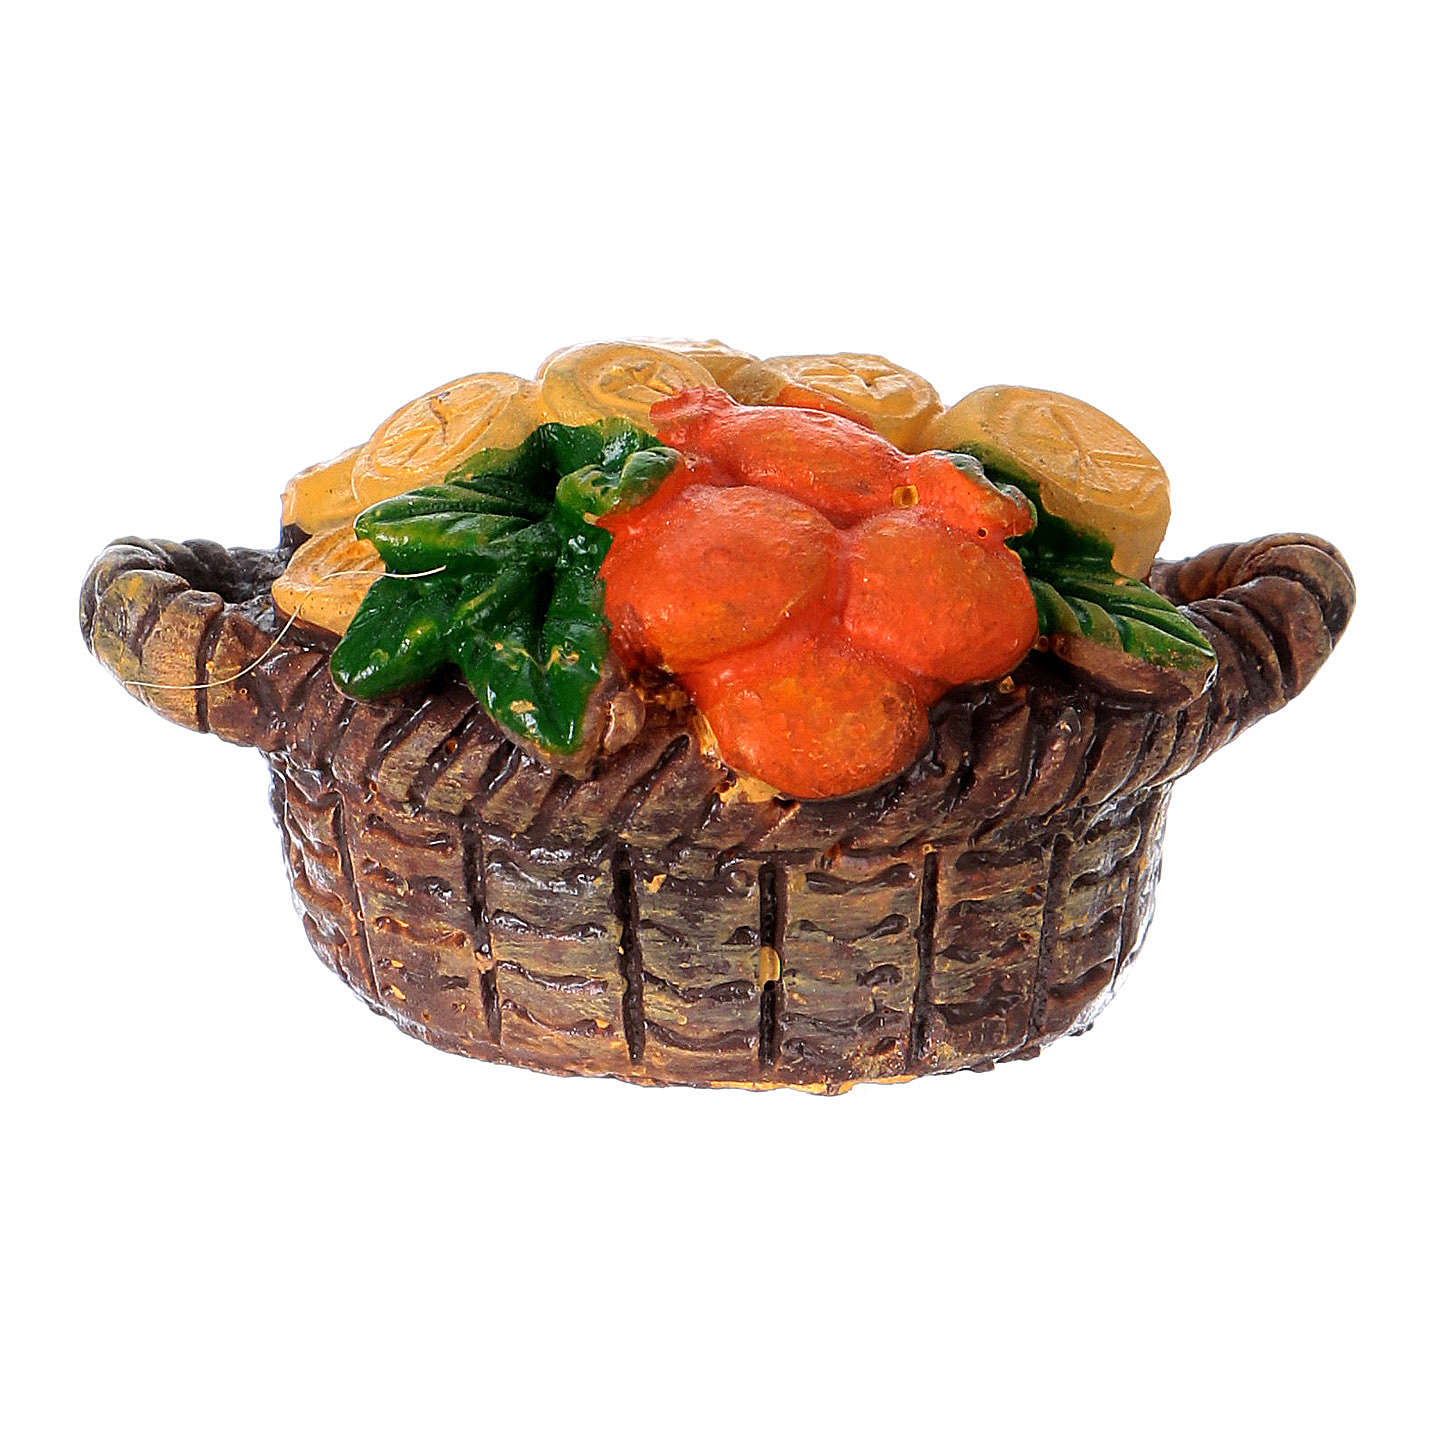 Greengrocer Basket in resin Moranduzzo nativity 10 cm 4